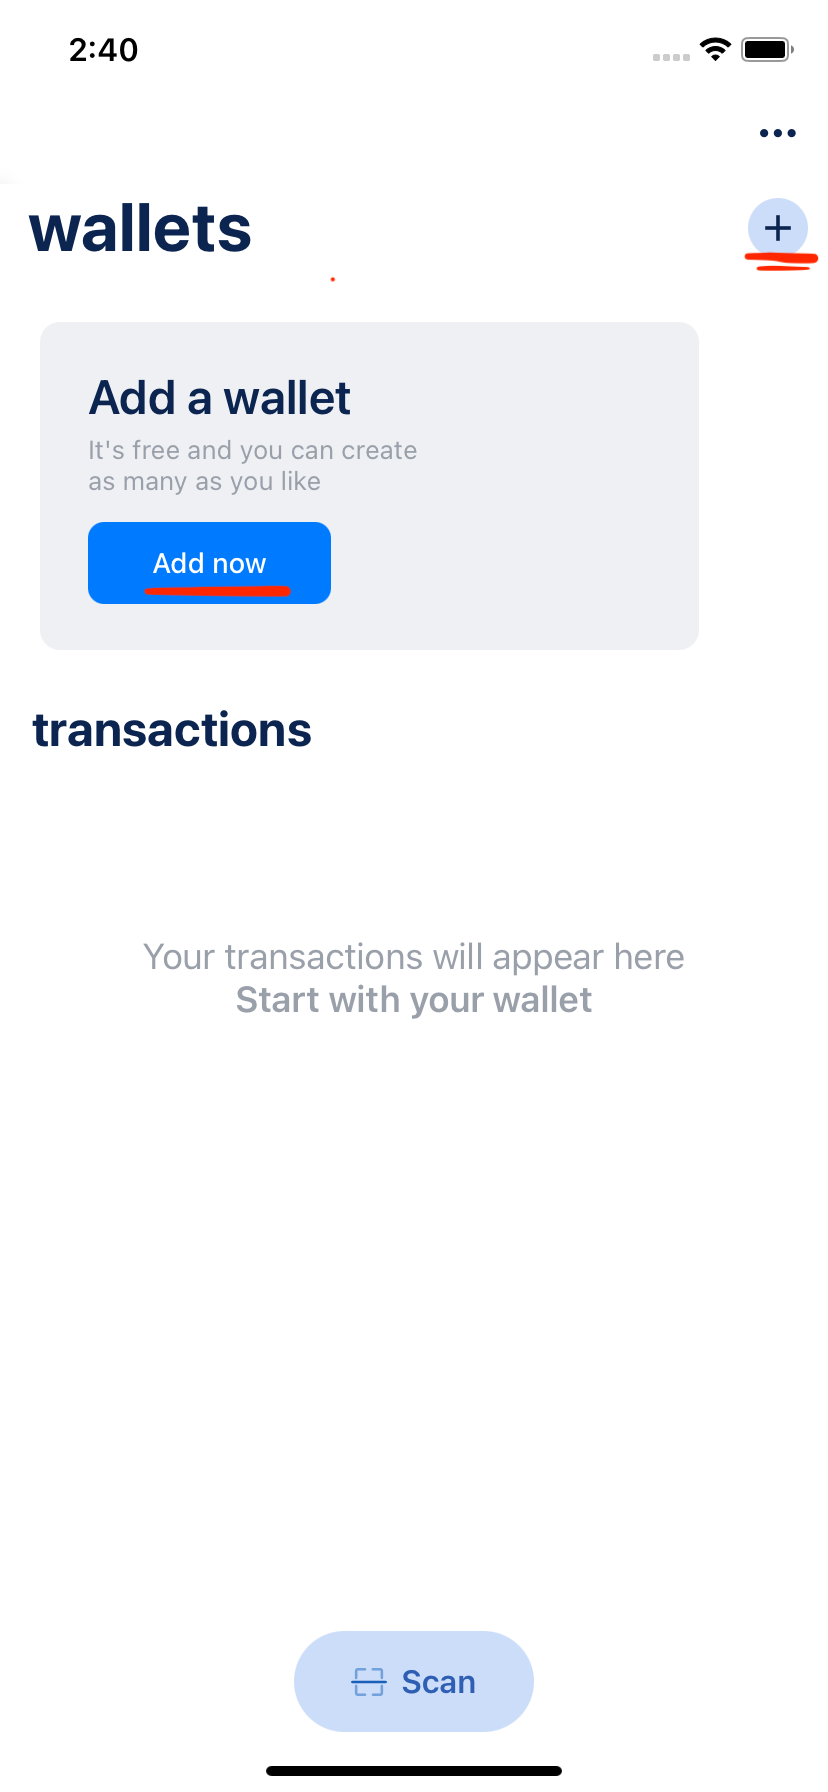 BlueWallet's first page